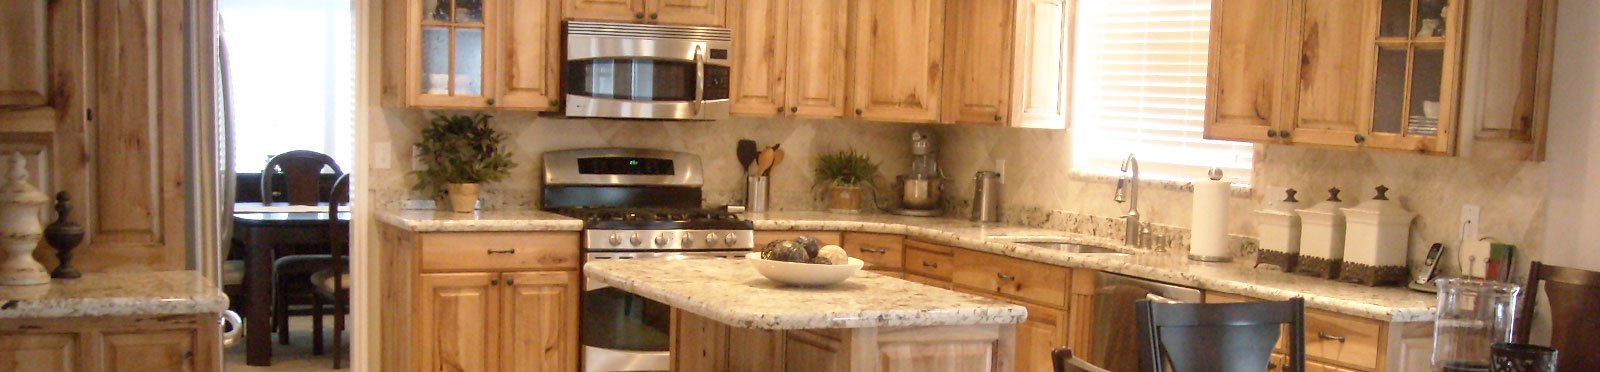 Cincinnati Ohio Kitchen Remodeling And Bathroom Remodeling